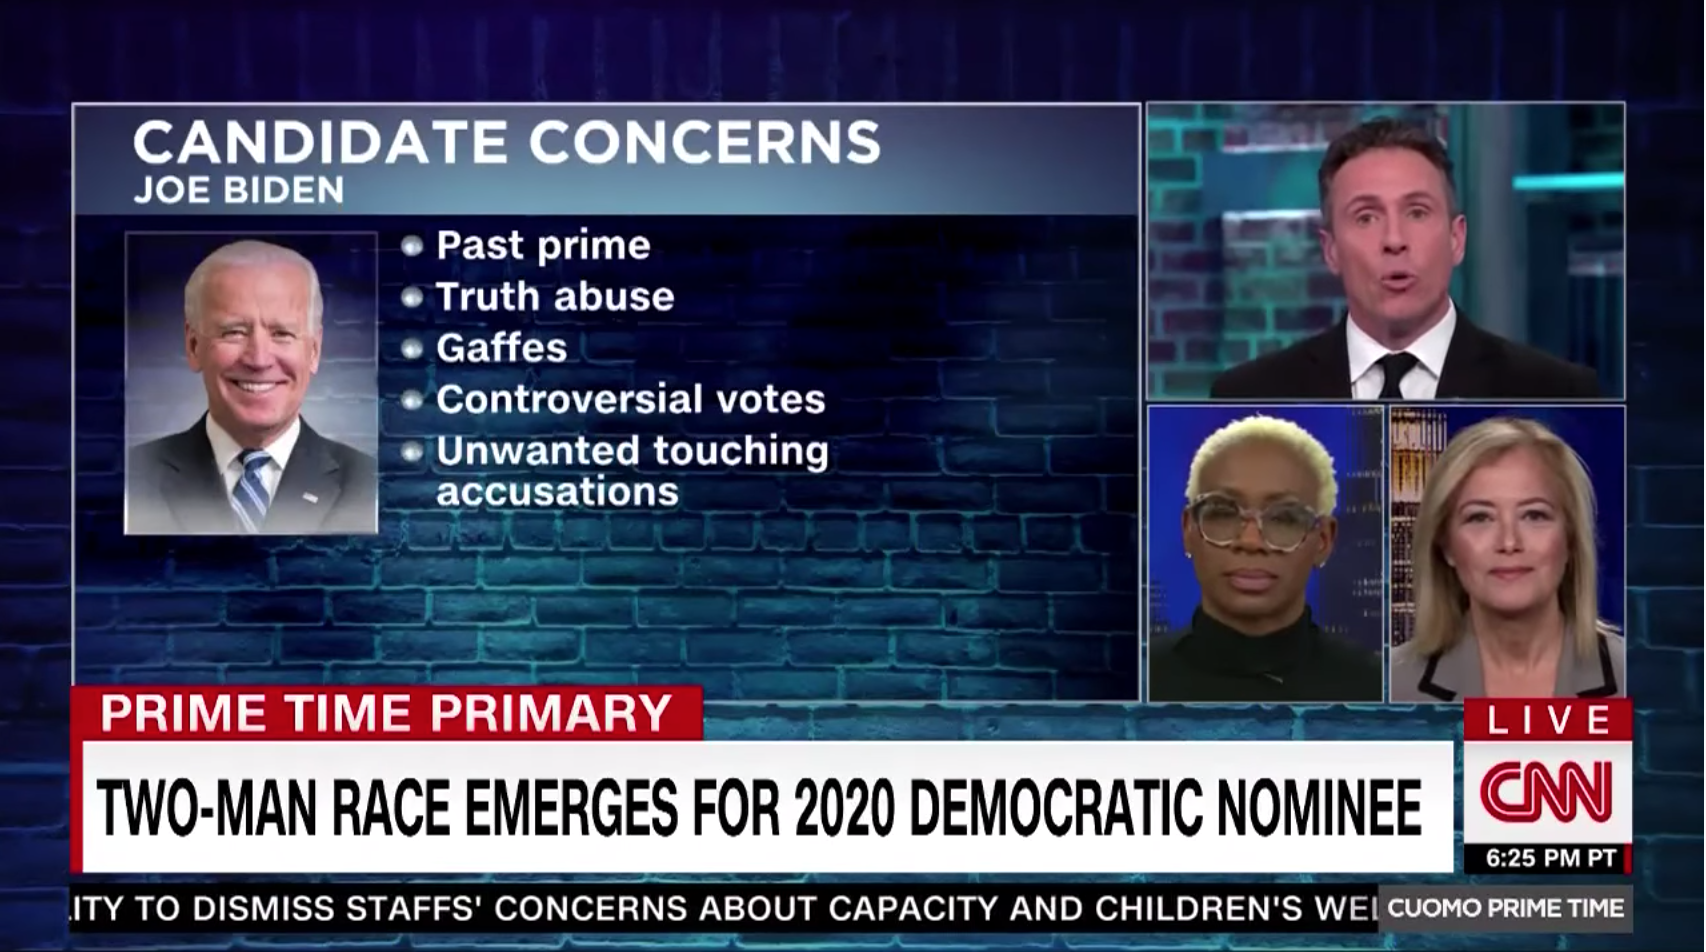 Nina Turner and Hilary Rosen on CNN's Cuomo Prime Time with Chris Cuomo